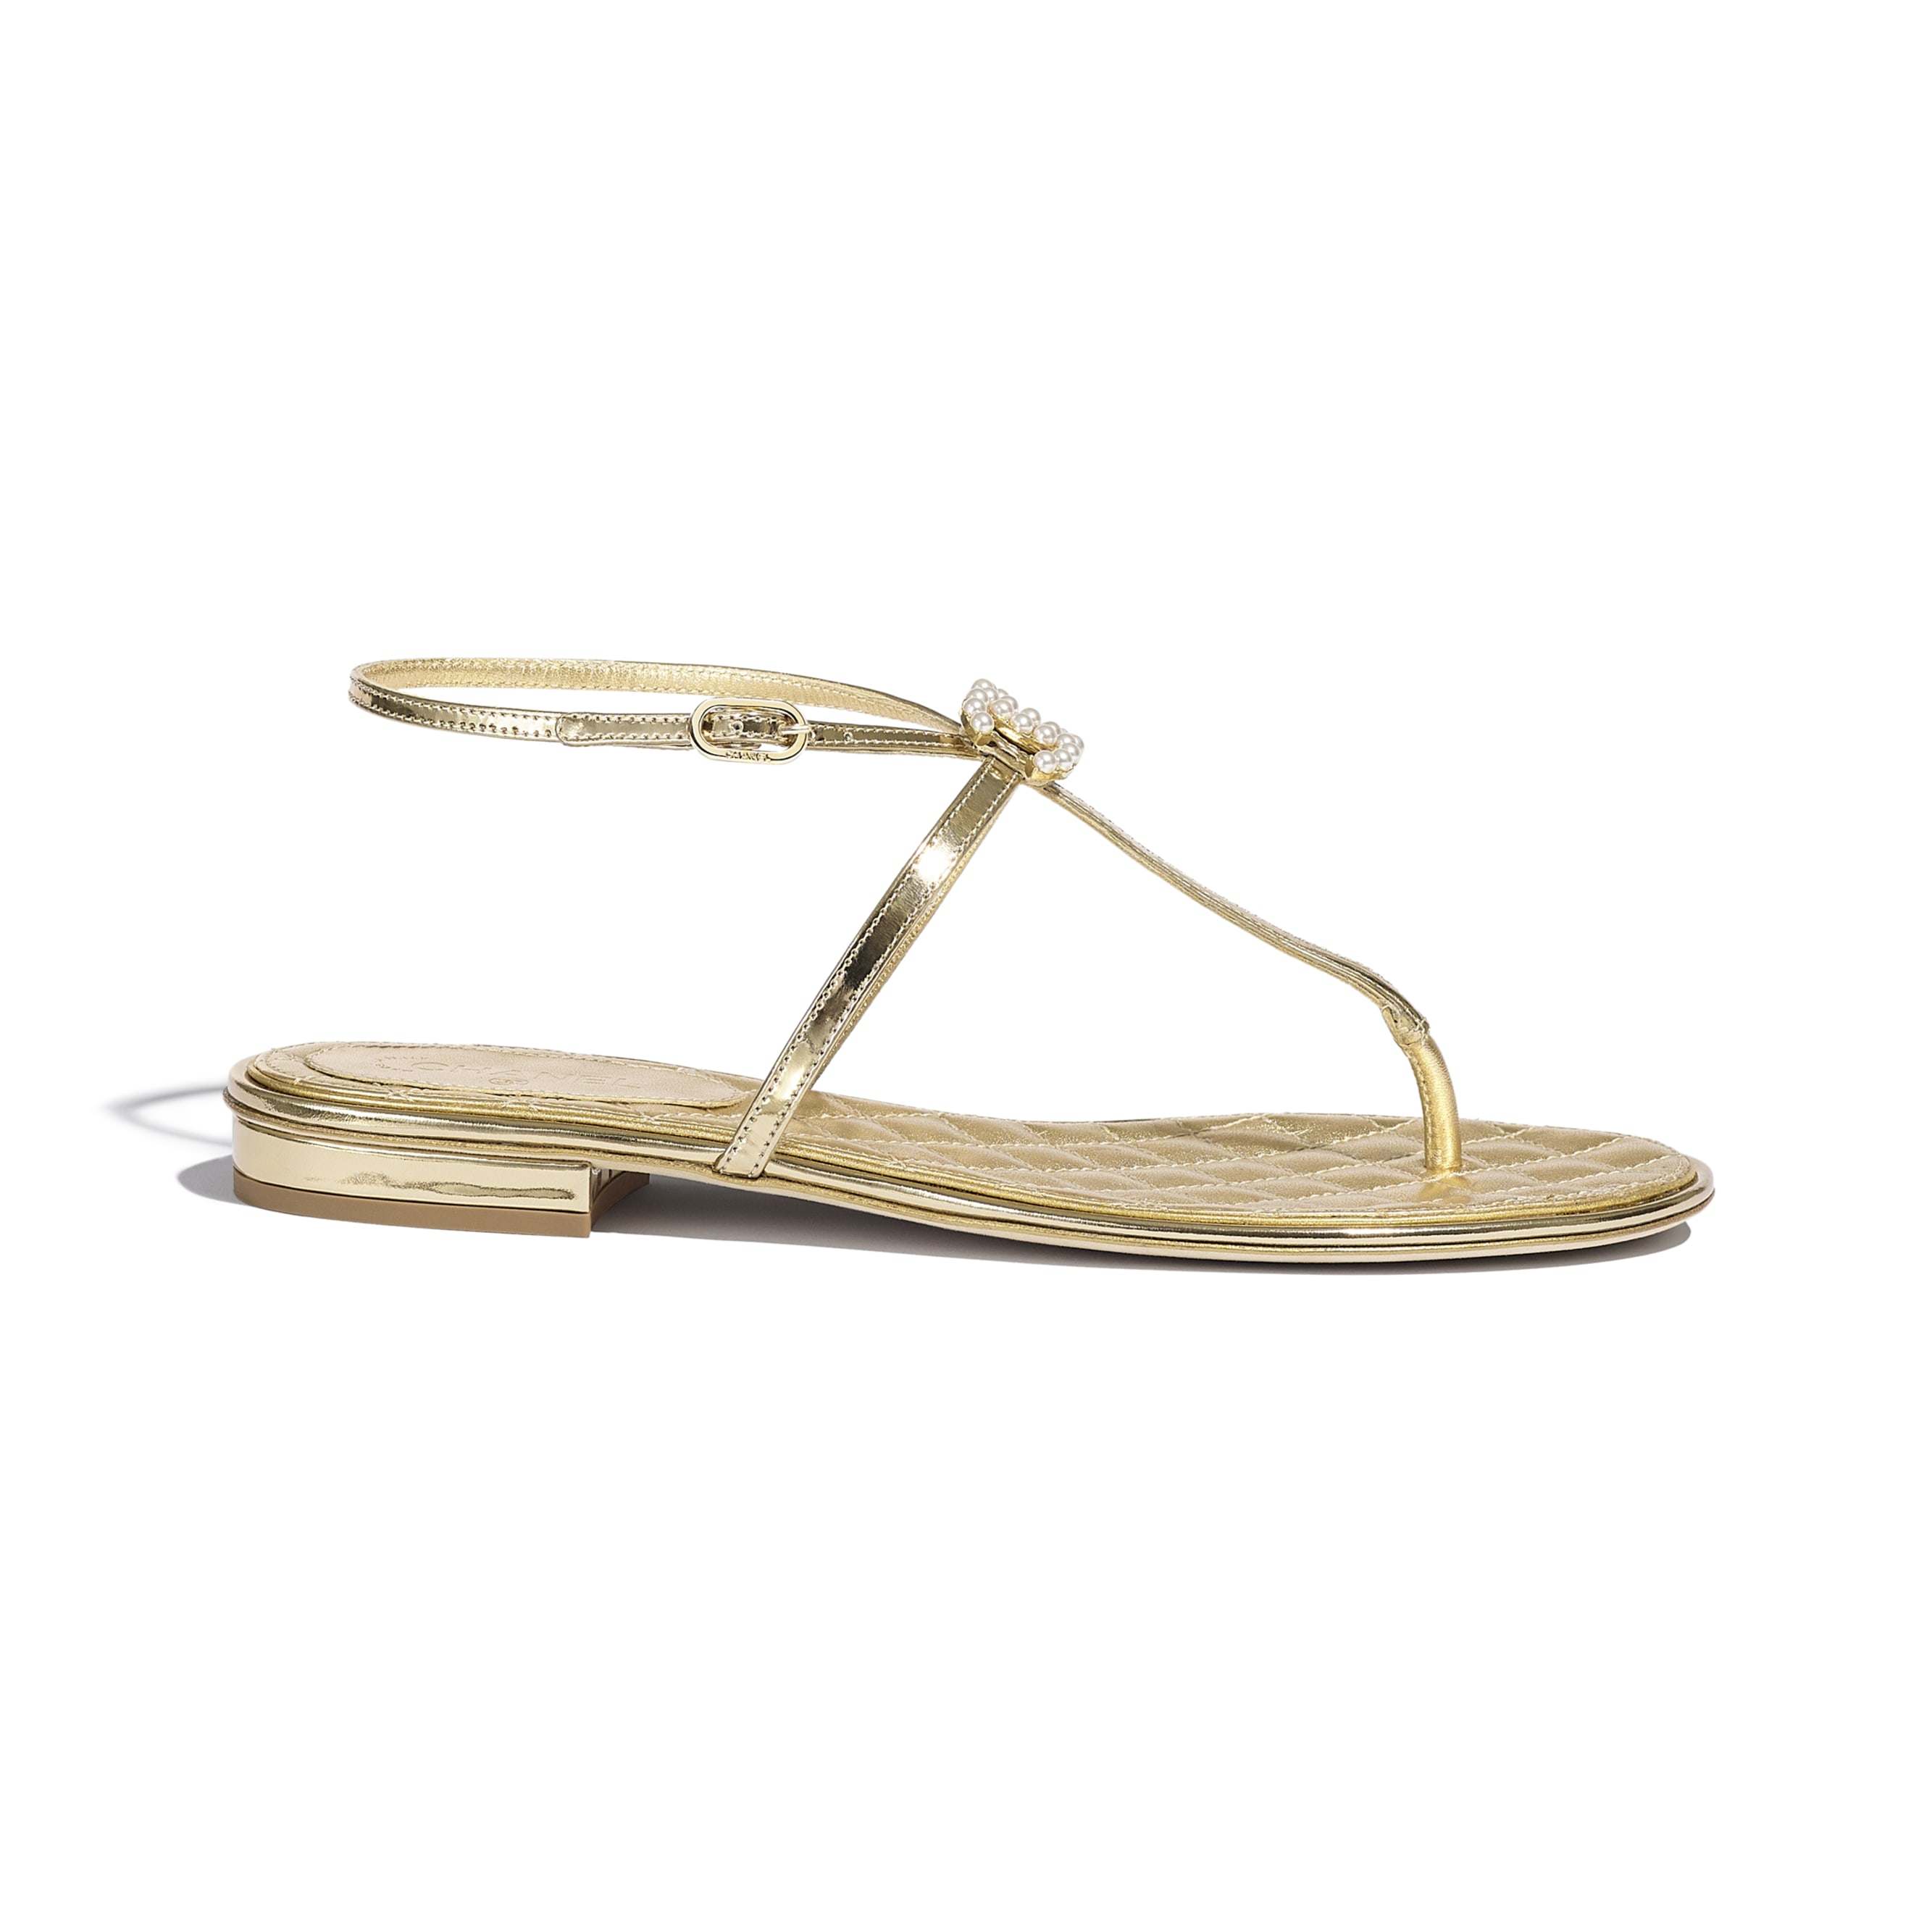 Sandals - Gold - Laminated Lambskin & Jewel - CHANEL - Default view - see standard sized version